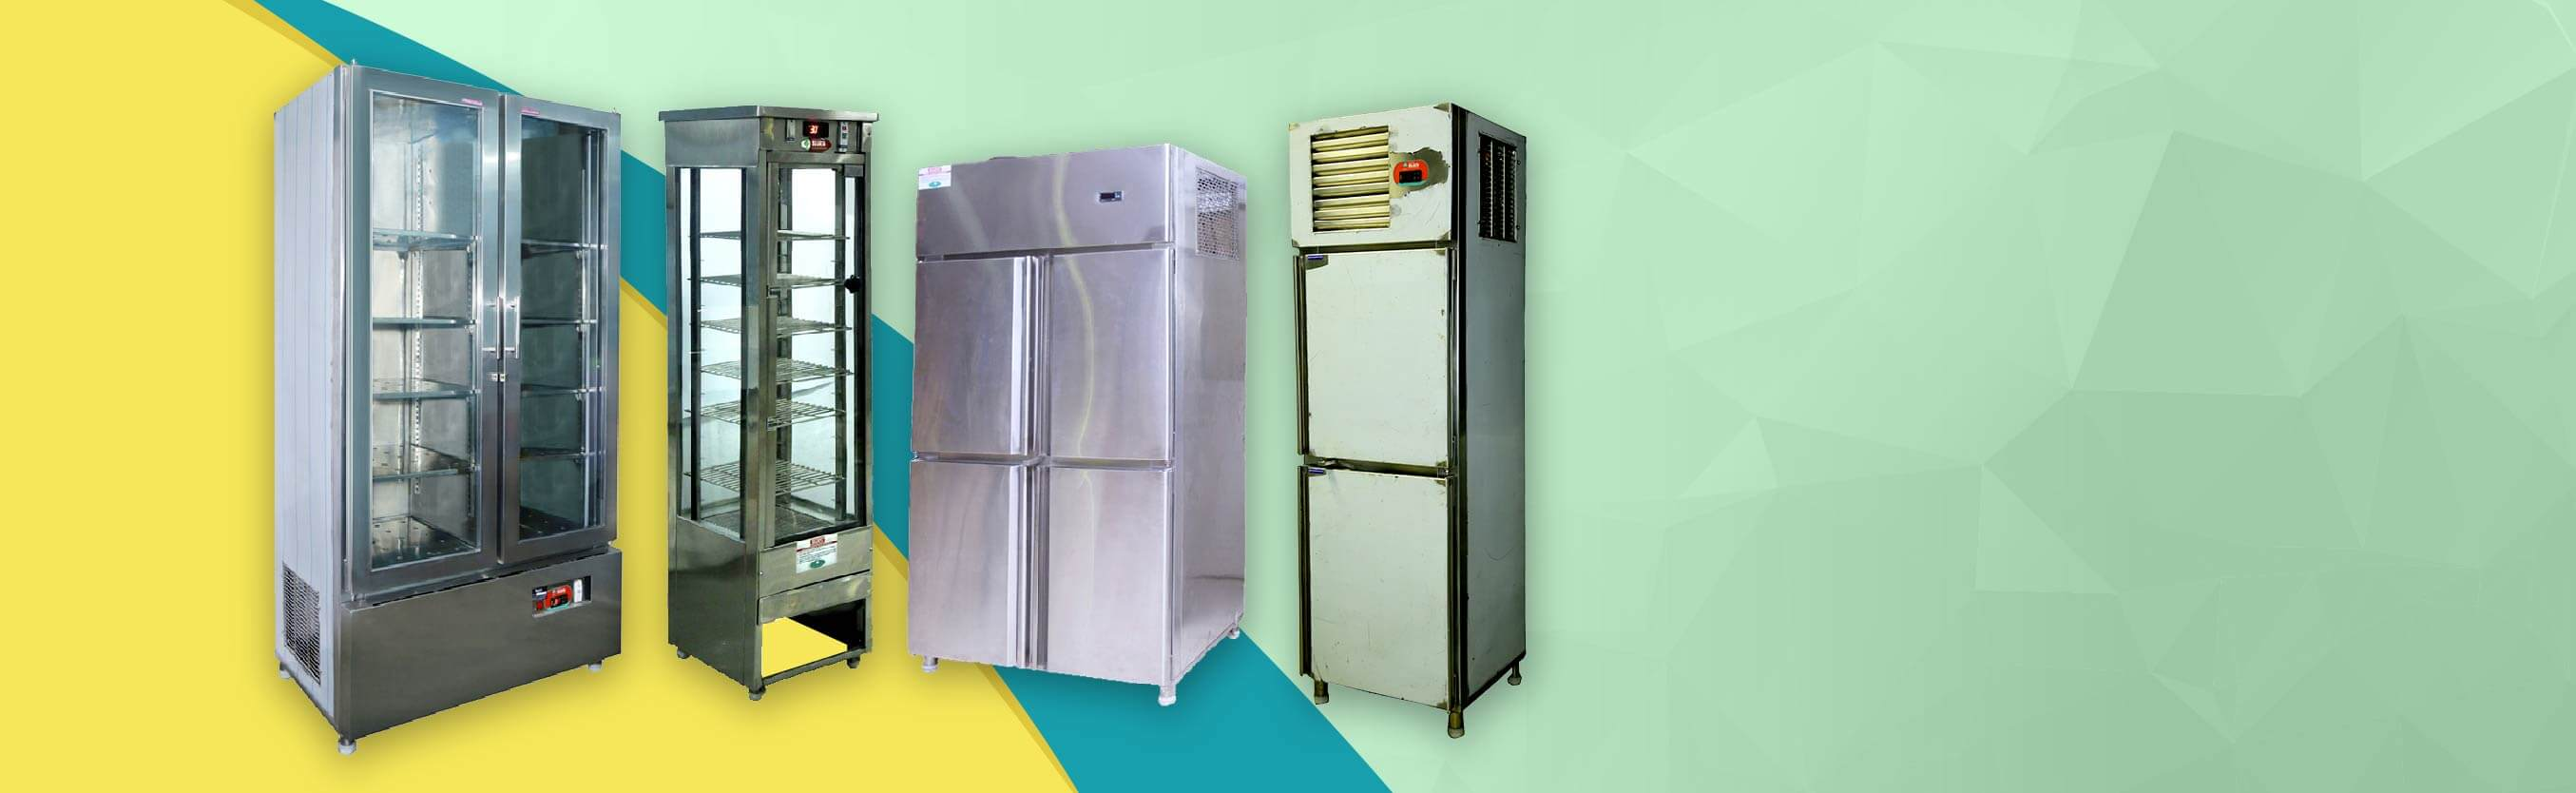 Commercial Kitchen Refrigerators & Chillers